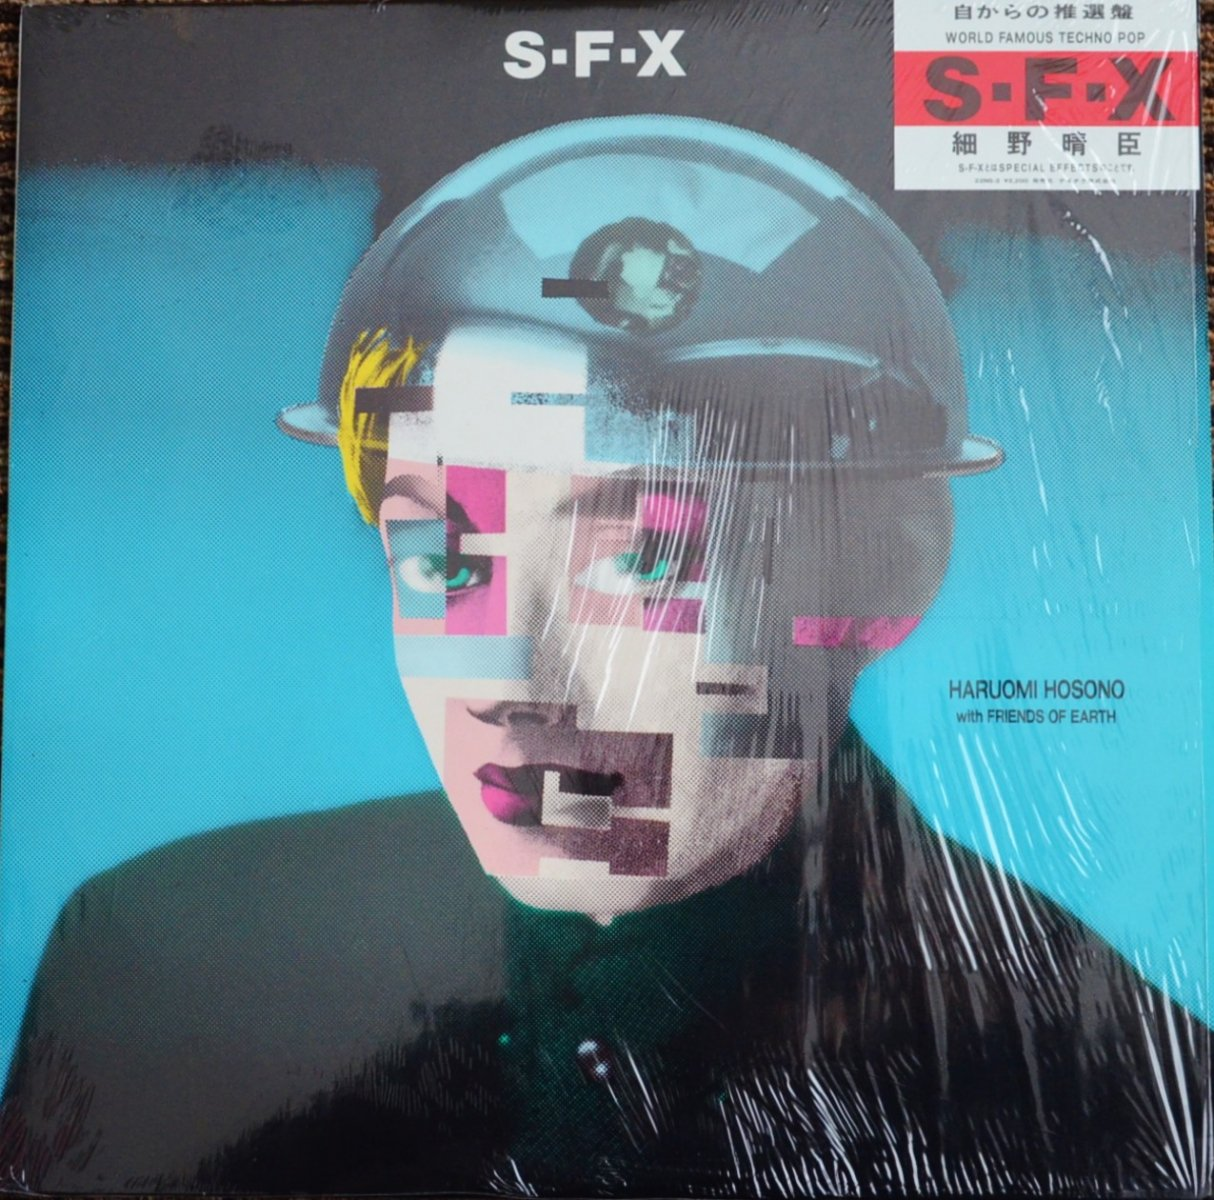 細野晴臣 HARUOMI HOSONO / WITH FRIENDS OF EARTH / S-F-X (LP)